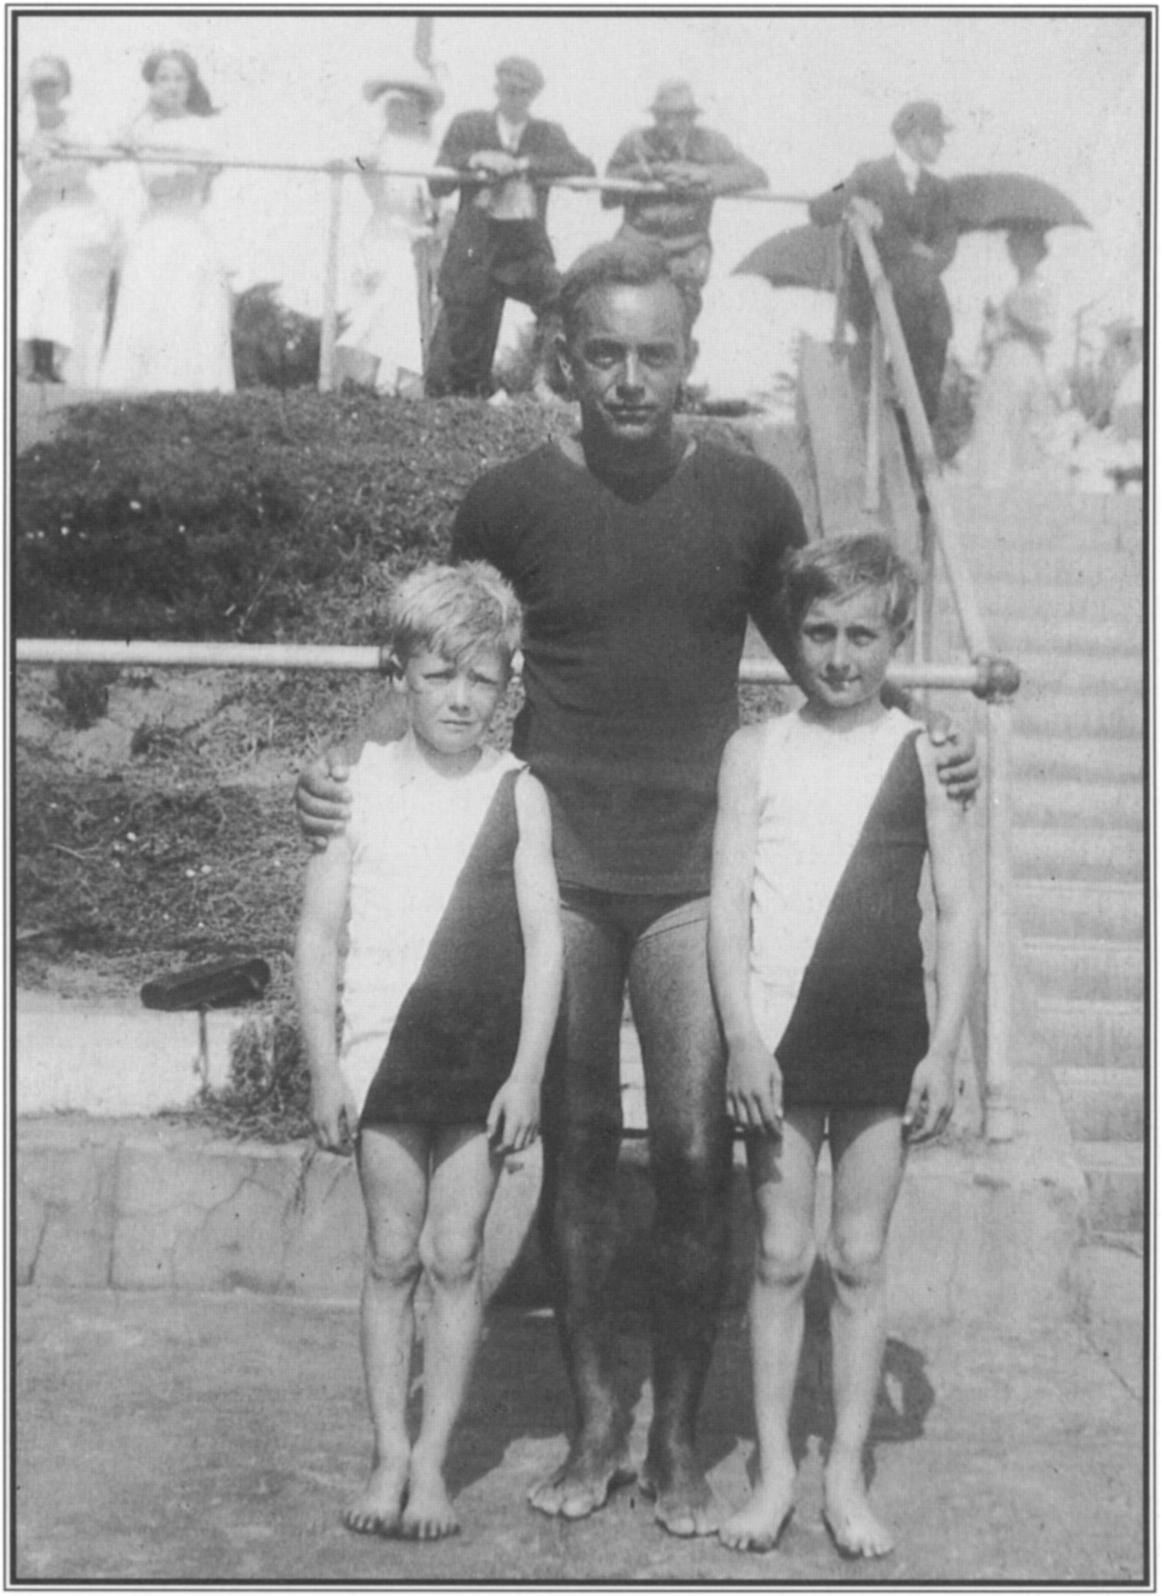 At Redondo Beach in 1910, George Freeth posed with two of his star pupils, brothers Tommy and Jerry Witt. Knock-kneed Tommy, on the left, was to become a div­ ing champion; Jerry was a nationally ranked swimmer.